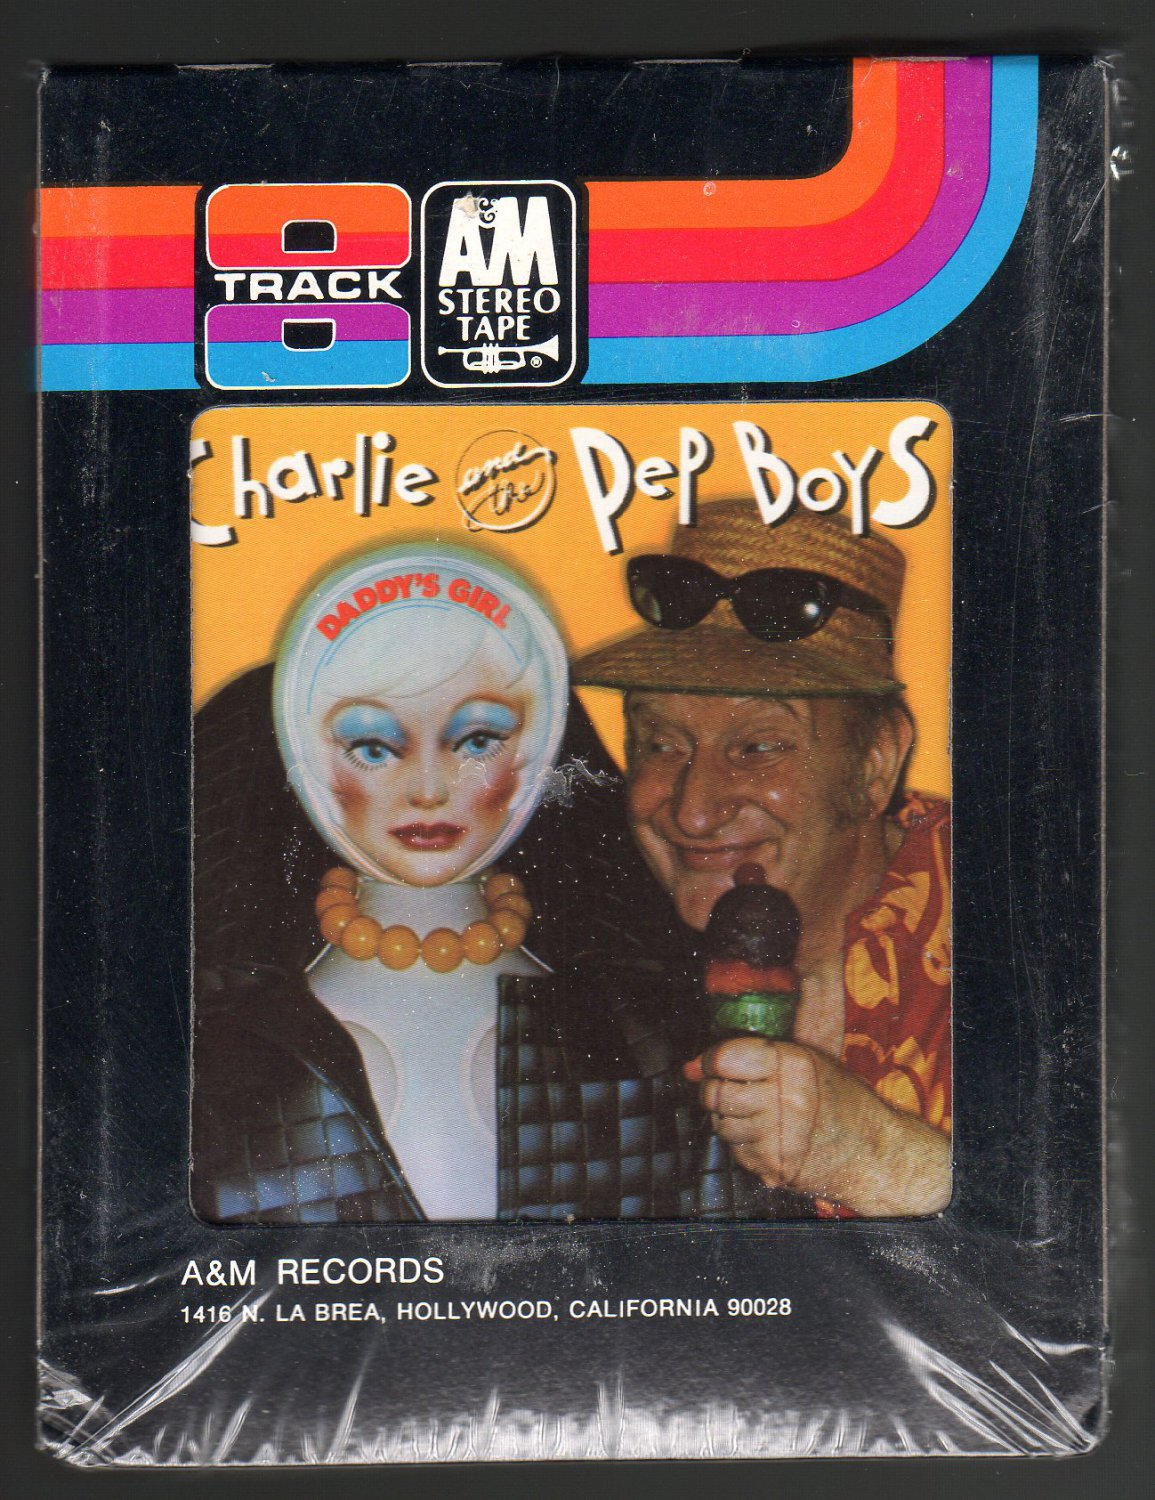 Charlie And The Pep Boys - Daddy's Girl 1976 A&M Sealed A23 8-TRACK TAPE